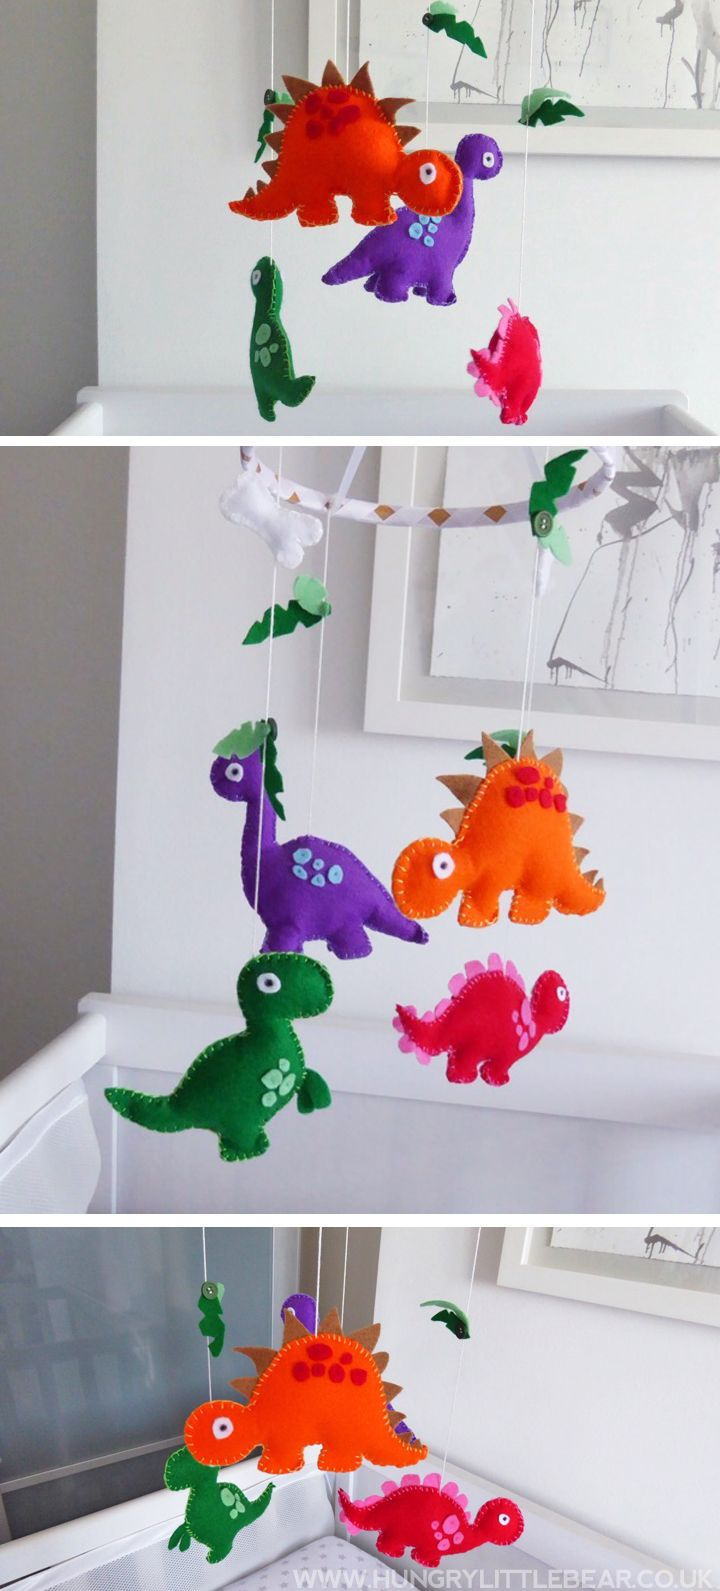 DIY Dinosaur Baby Mobile | Tutorial - MAKE YOUR OWN!